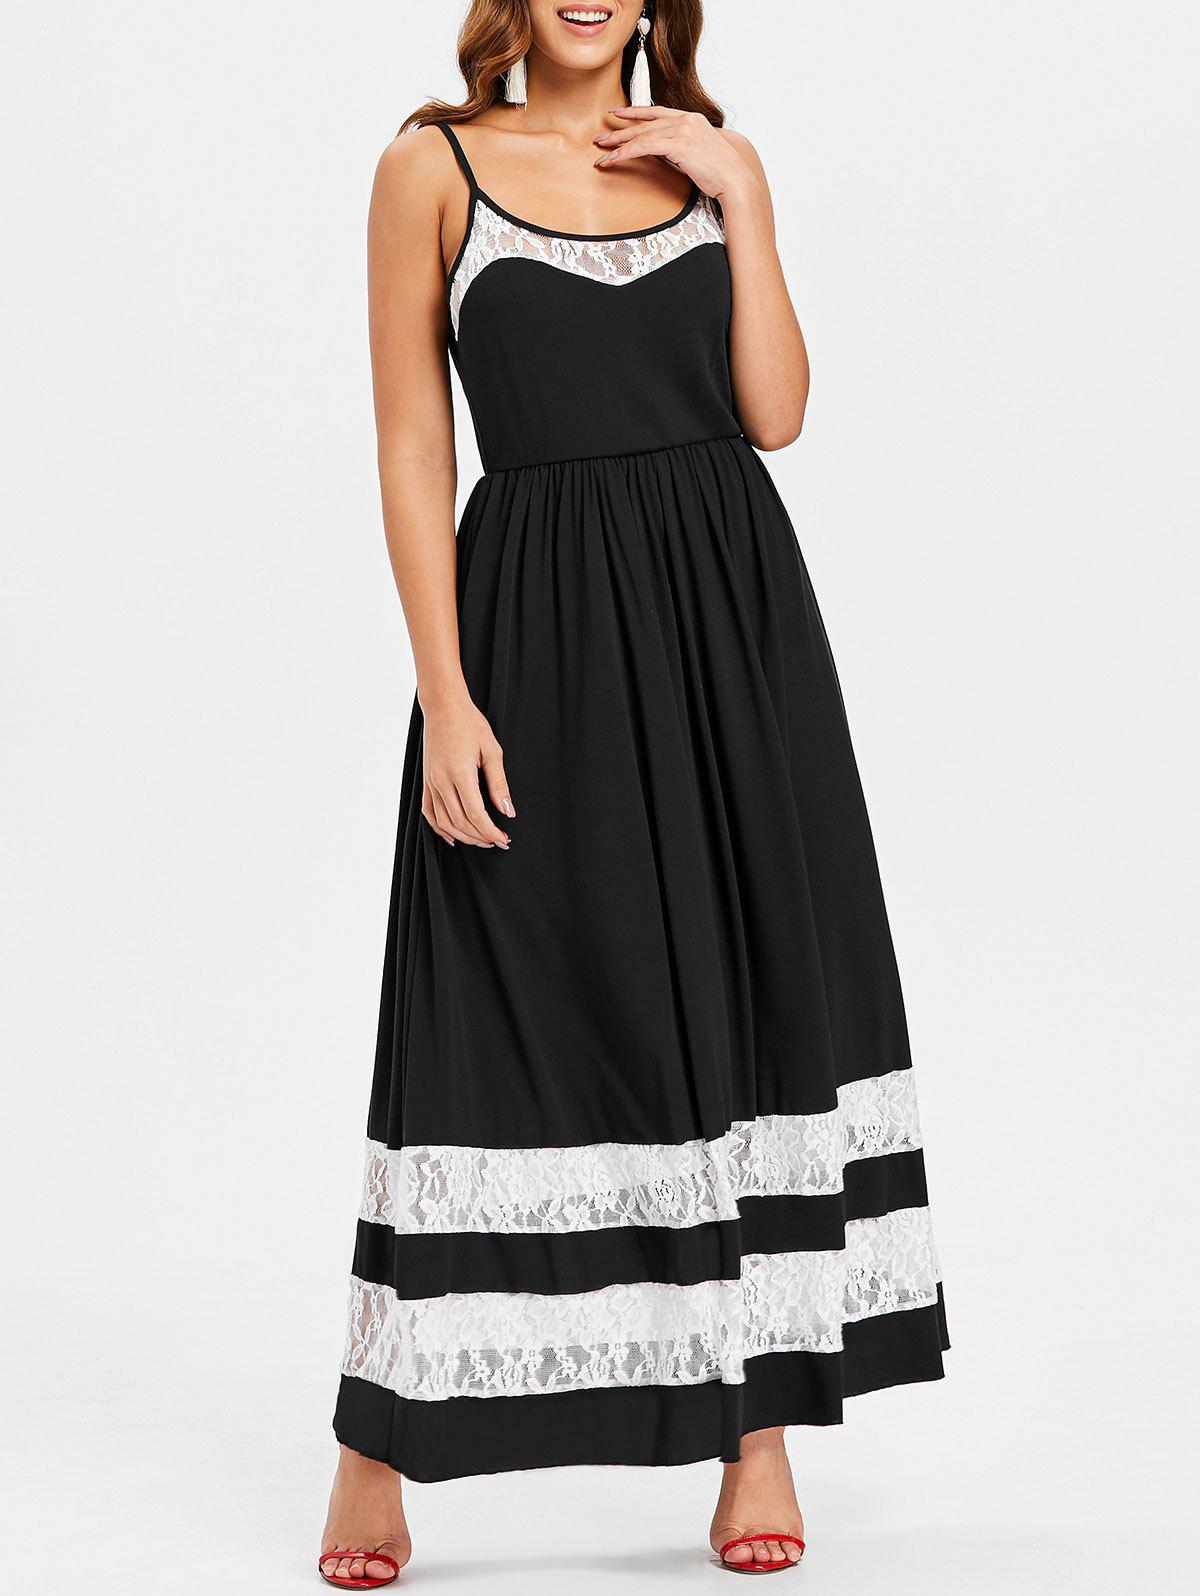 Lace Trim Spaghetti Strap Maxi Dress - BLACK M